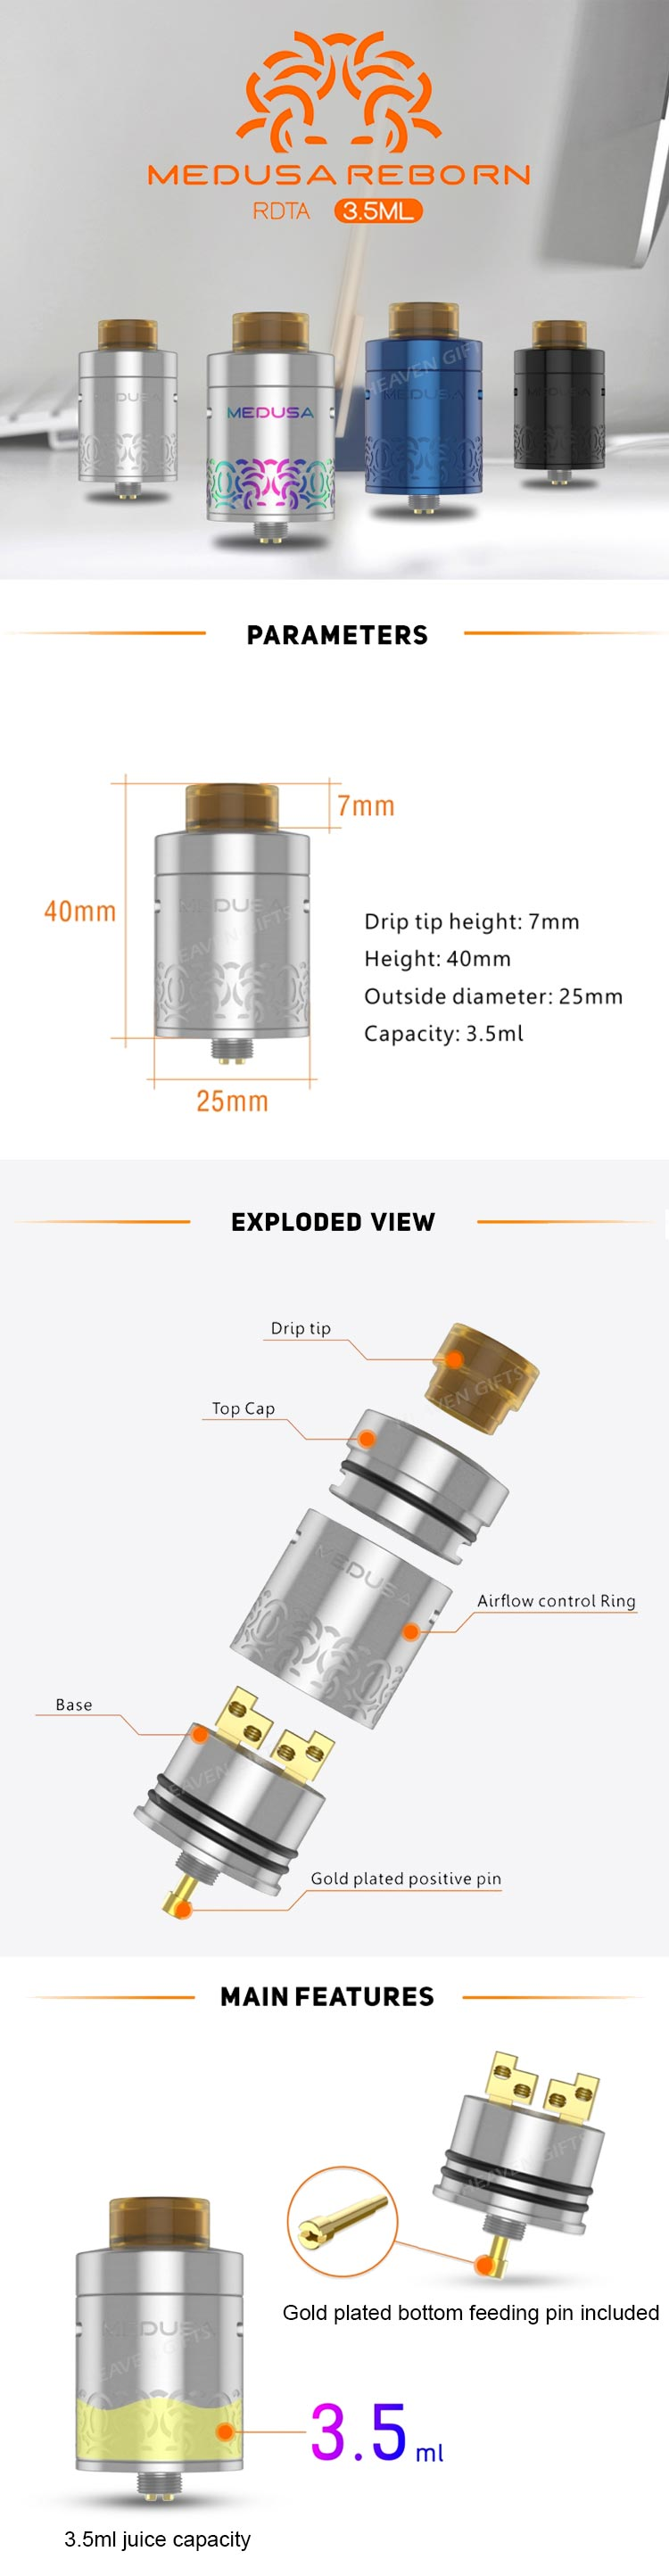 Newest 100% Original 3.5ml GeekVape Medusa Reborn RDTA